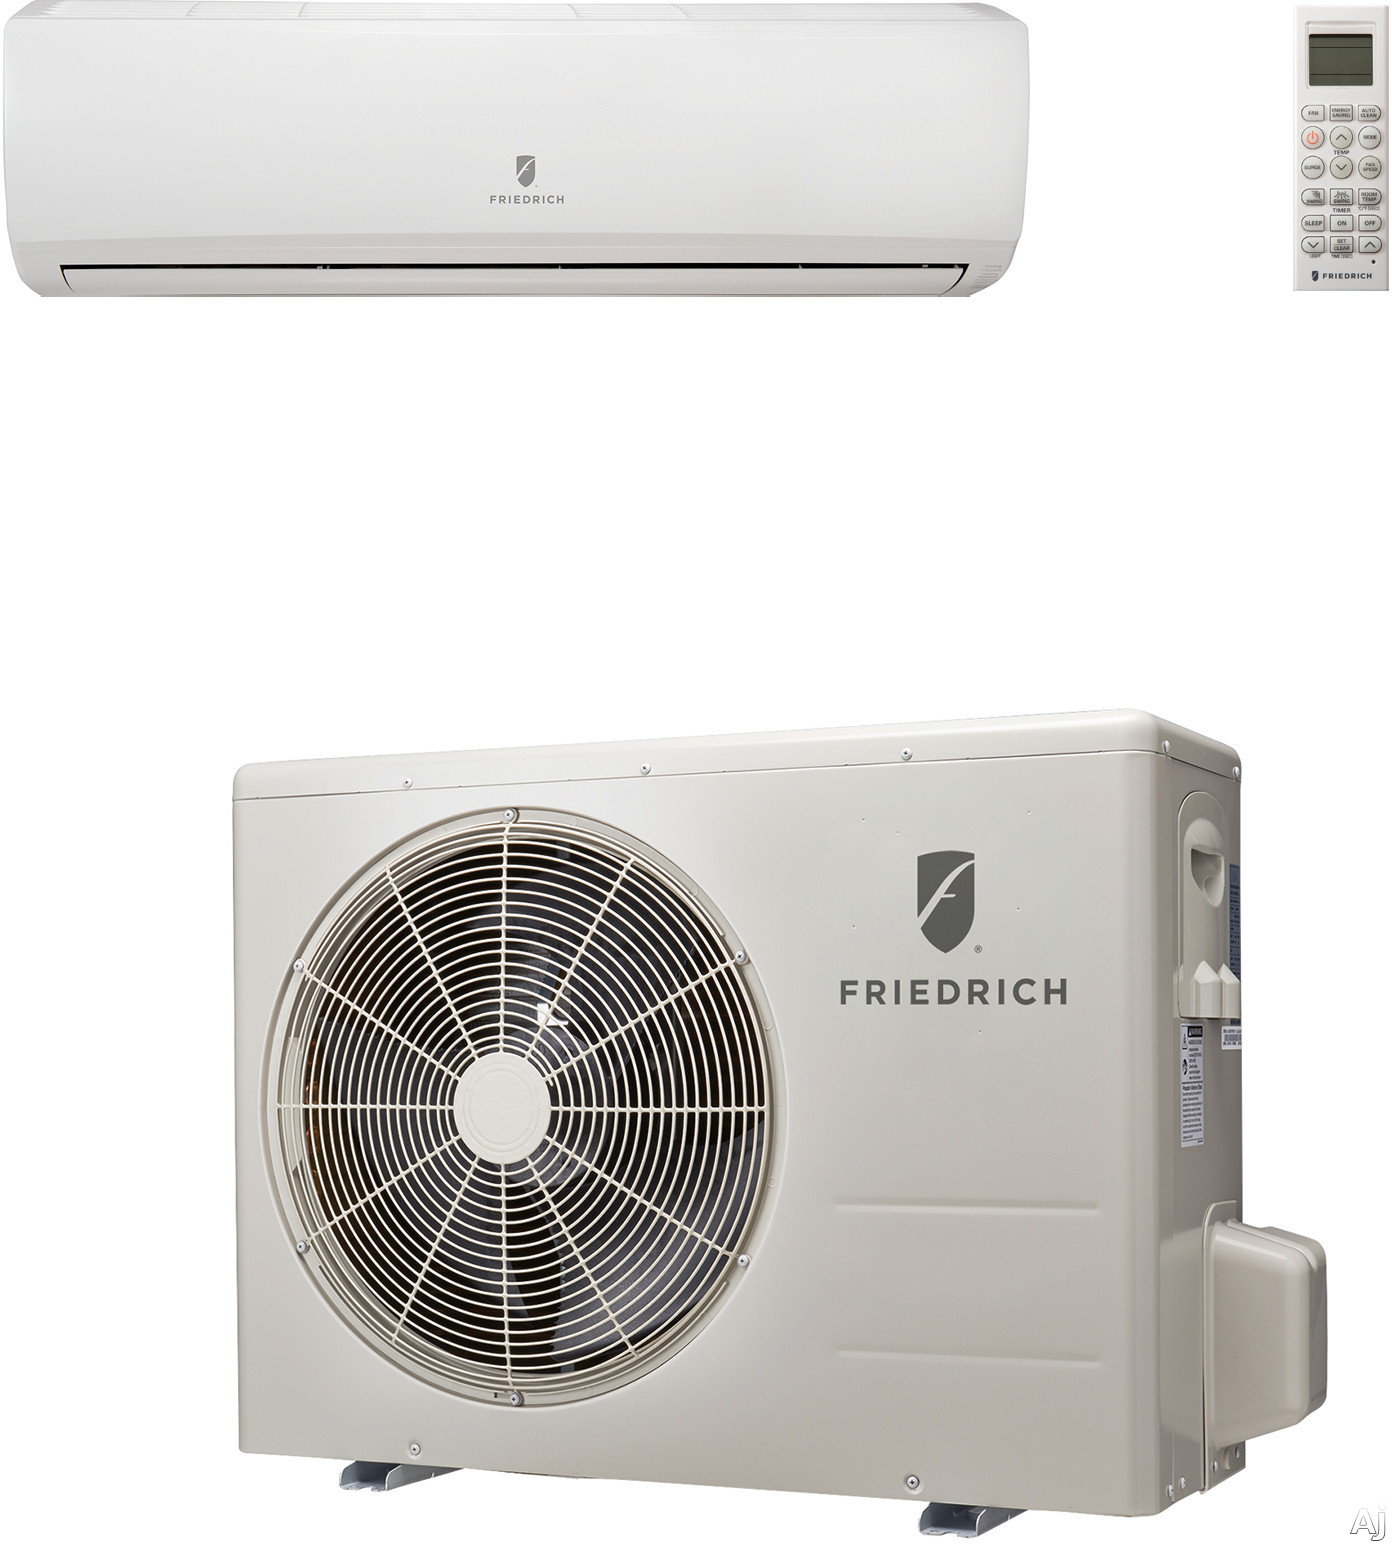 #595149 18rlq Halcyon Wall Mounted Mini Split Single Zone Heat  Best 3273 Halcyon Mini Split photos with 1392x1544 px on helpvideos.info - Air Conditioners, Air Coolers and more